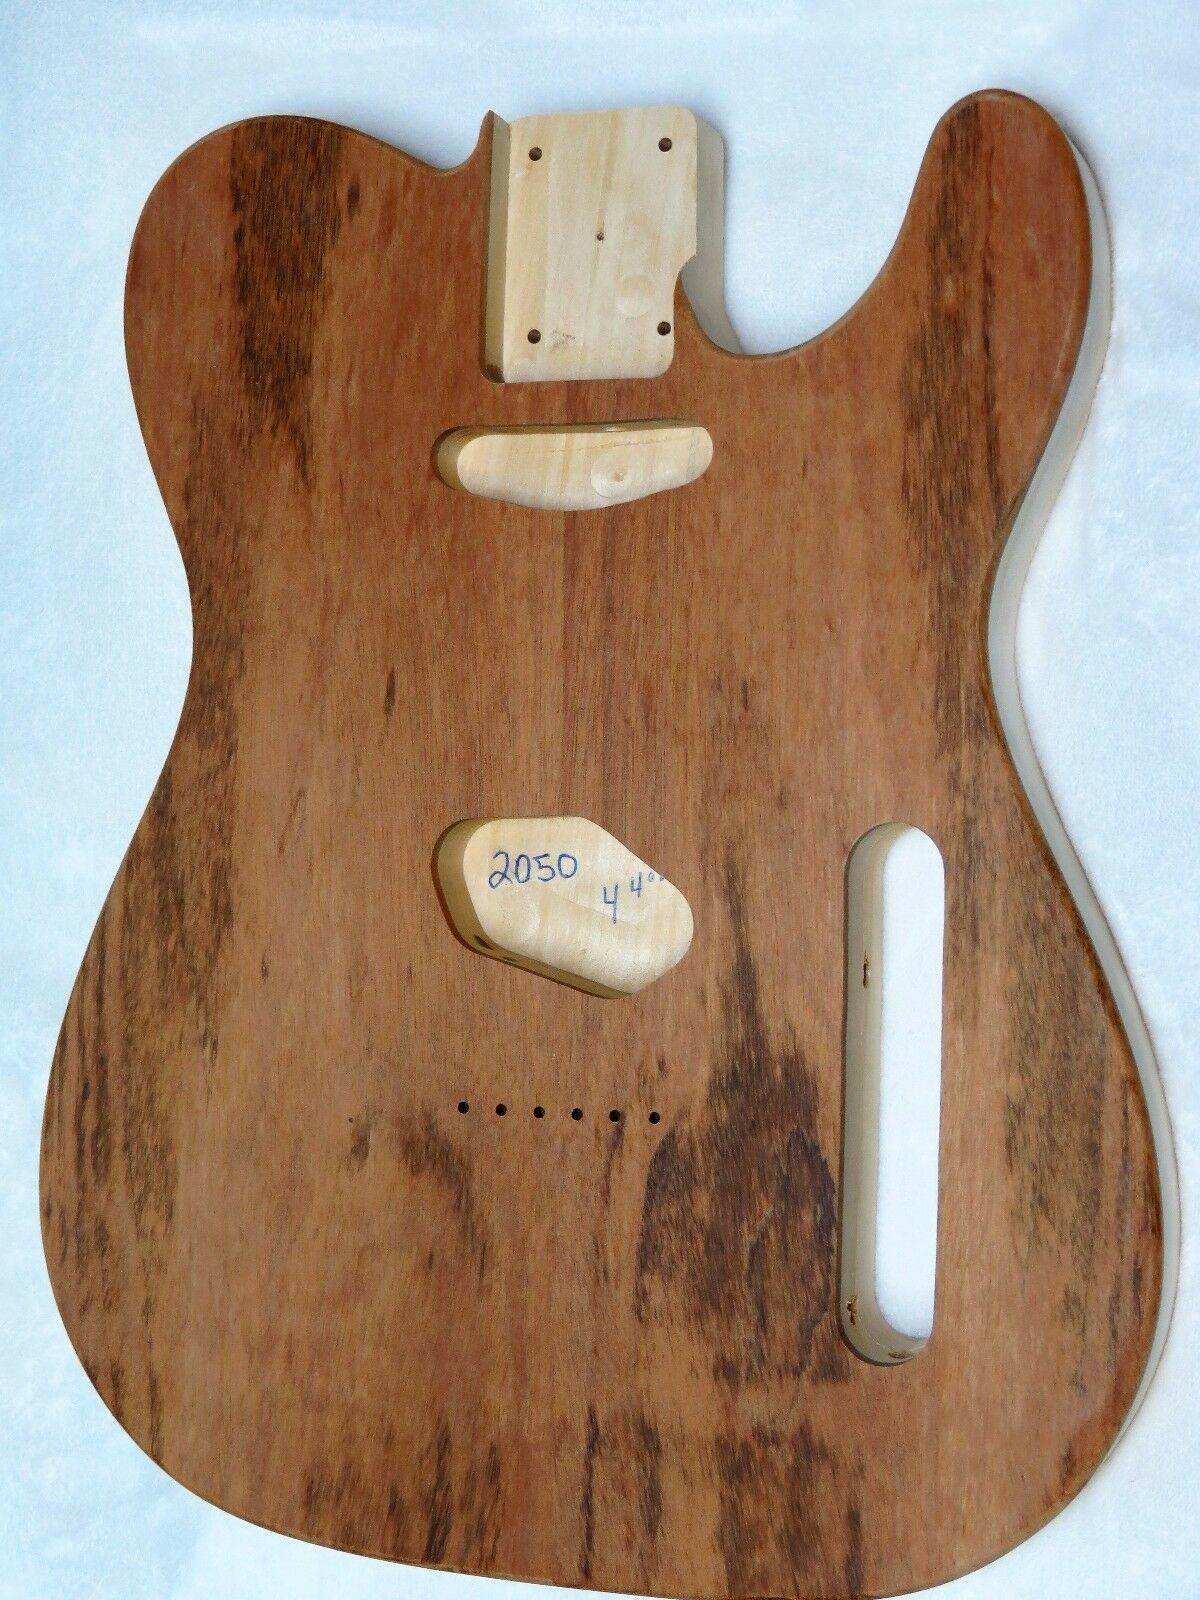 Tigerwood Maple   Basswood Telecaster Tele Body 4lbs 4oz